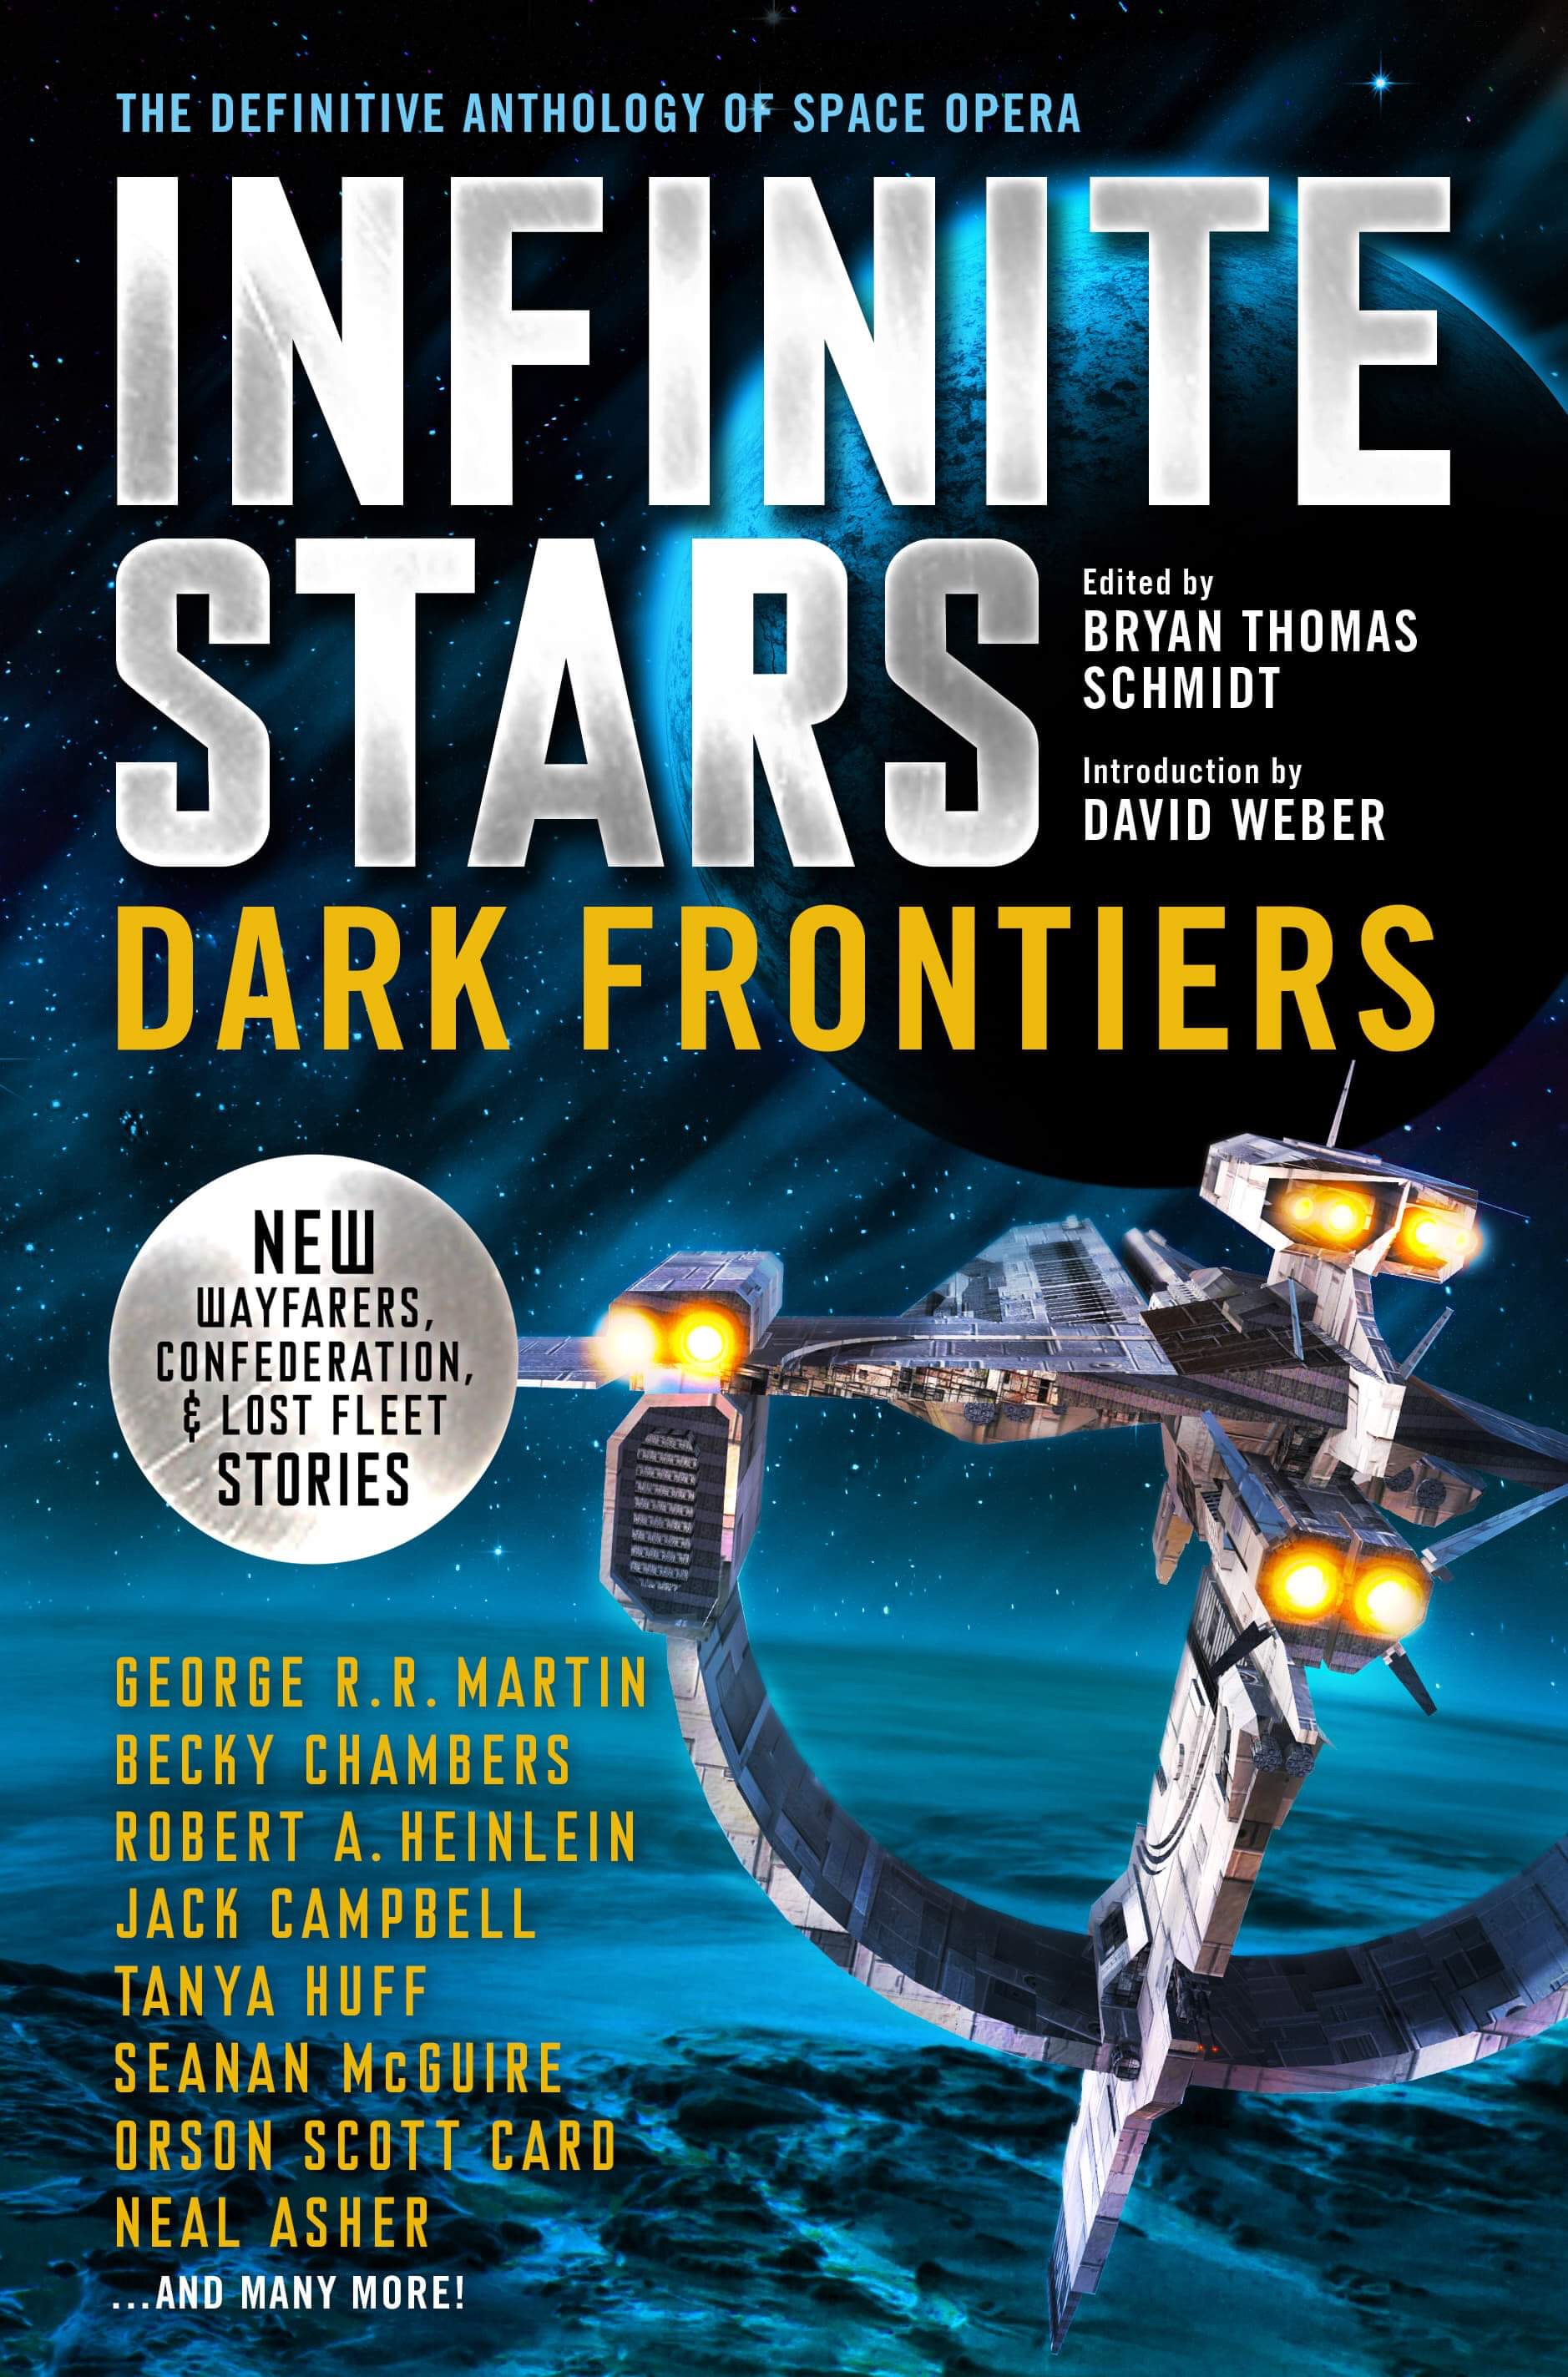 Infinite Stars: Dark Frontiers by Bryan Thomas Schmidt